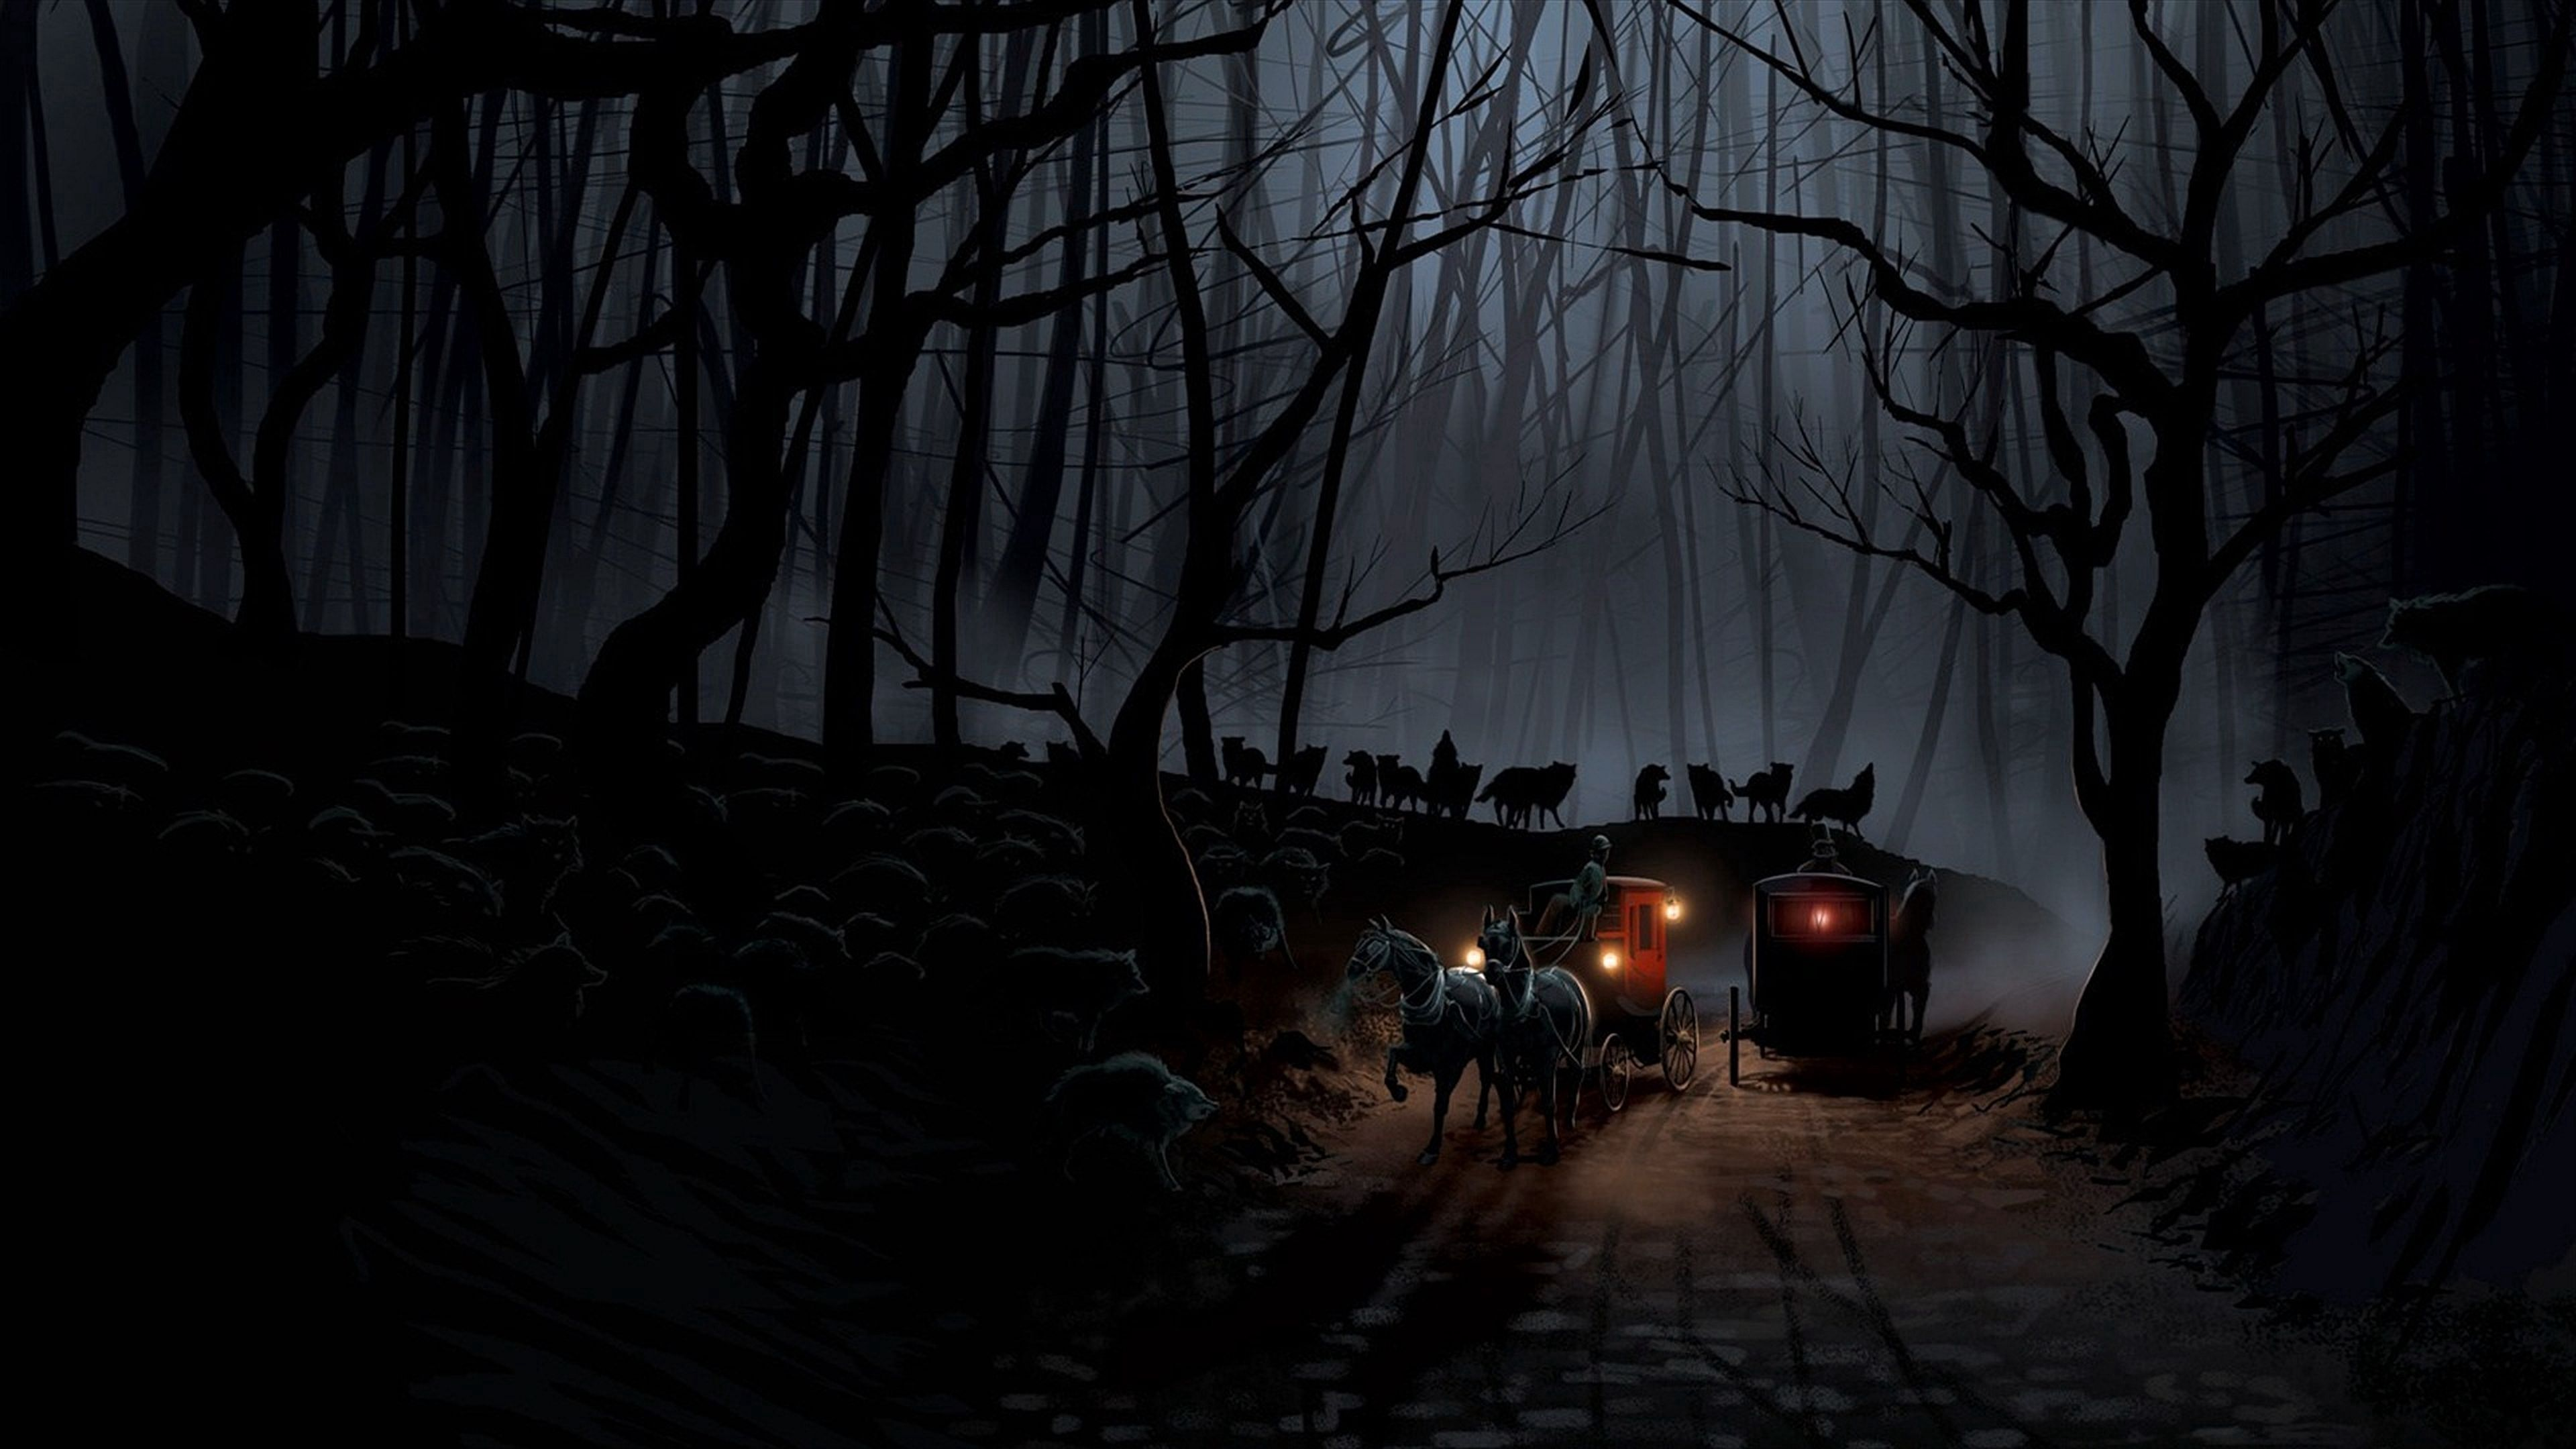 58472 download wallpaper Wolfs, Night, Dark, Forest, Flock, Coach screensavers and pictures for free